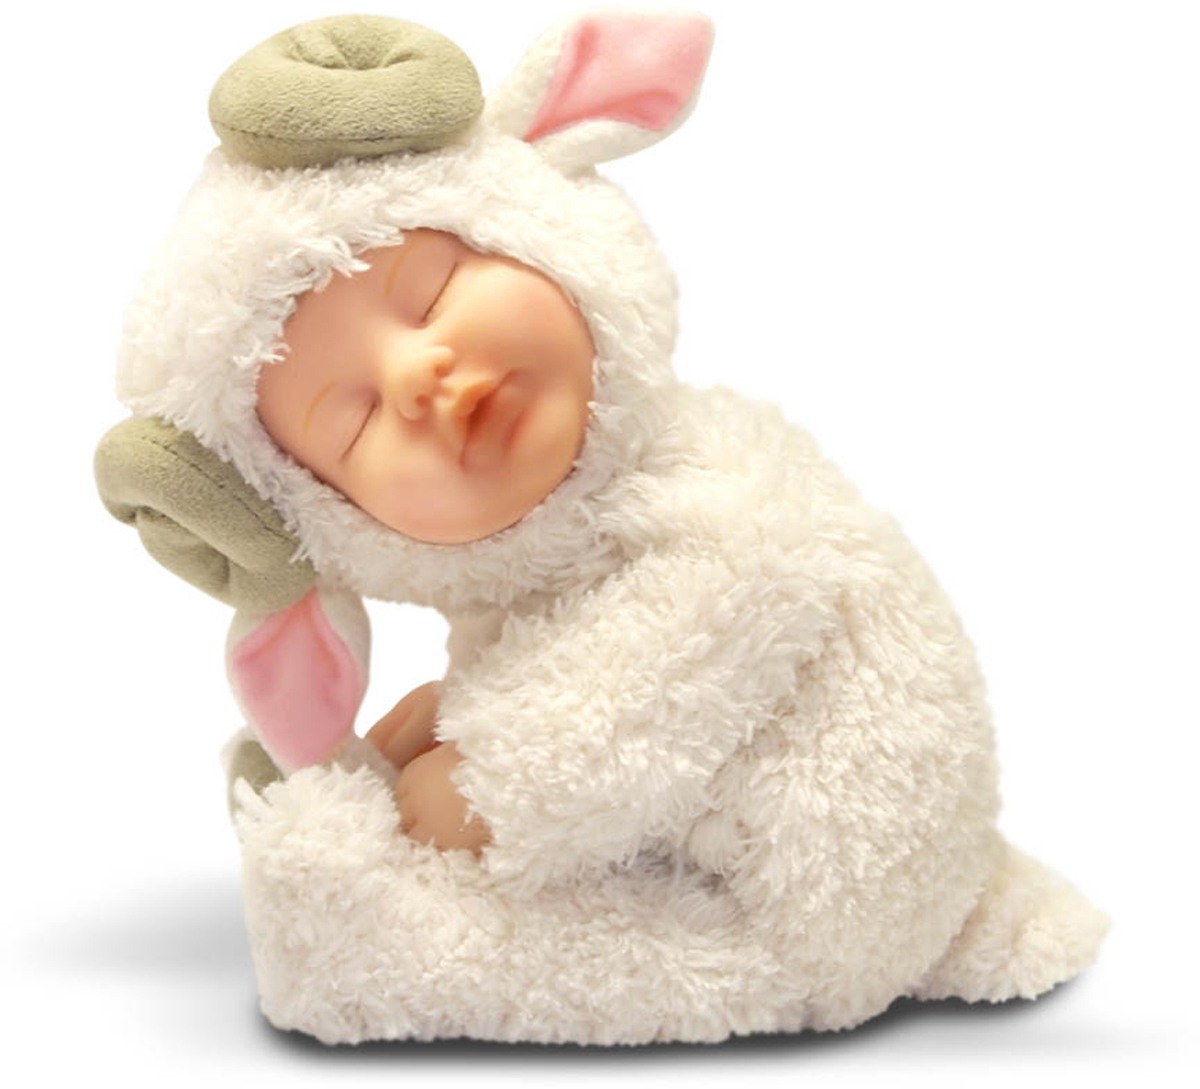 Ovation Anne Geddes Кукла Знаки зодиака Овен ovation anne geddes кукла знаки зодиака овен